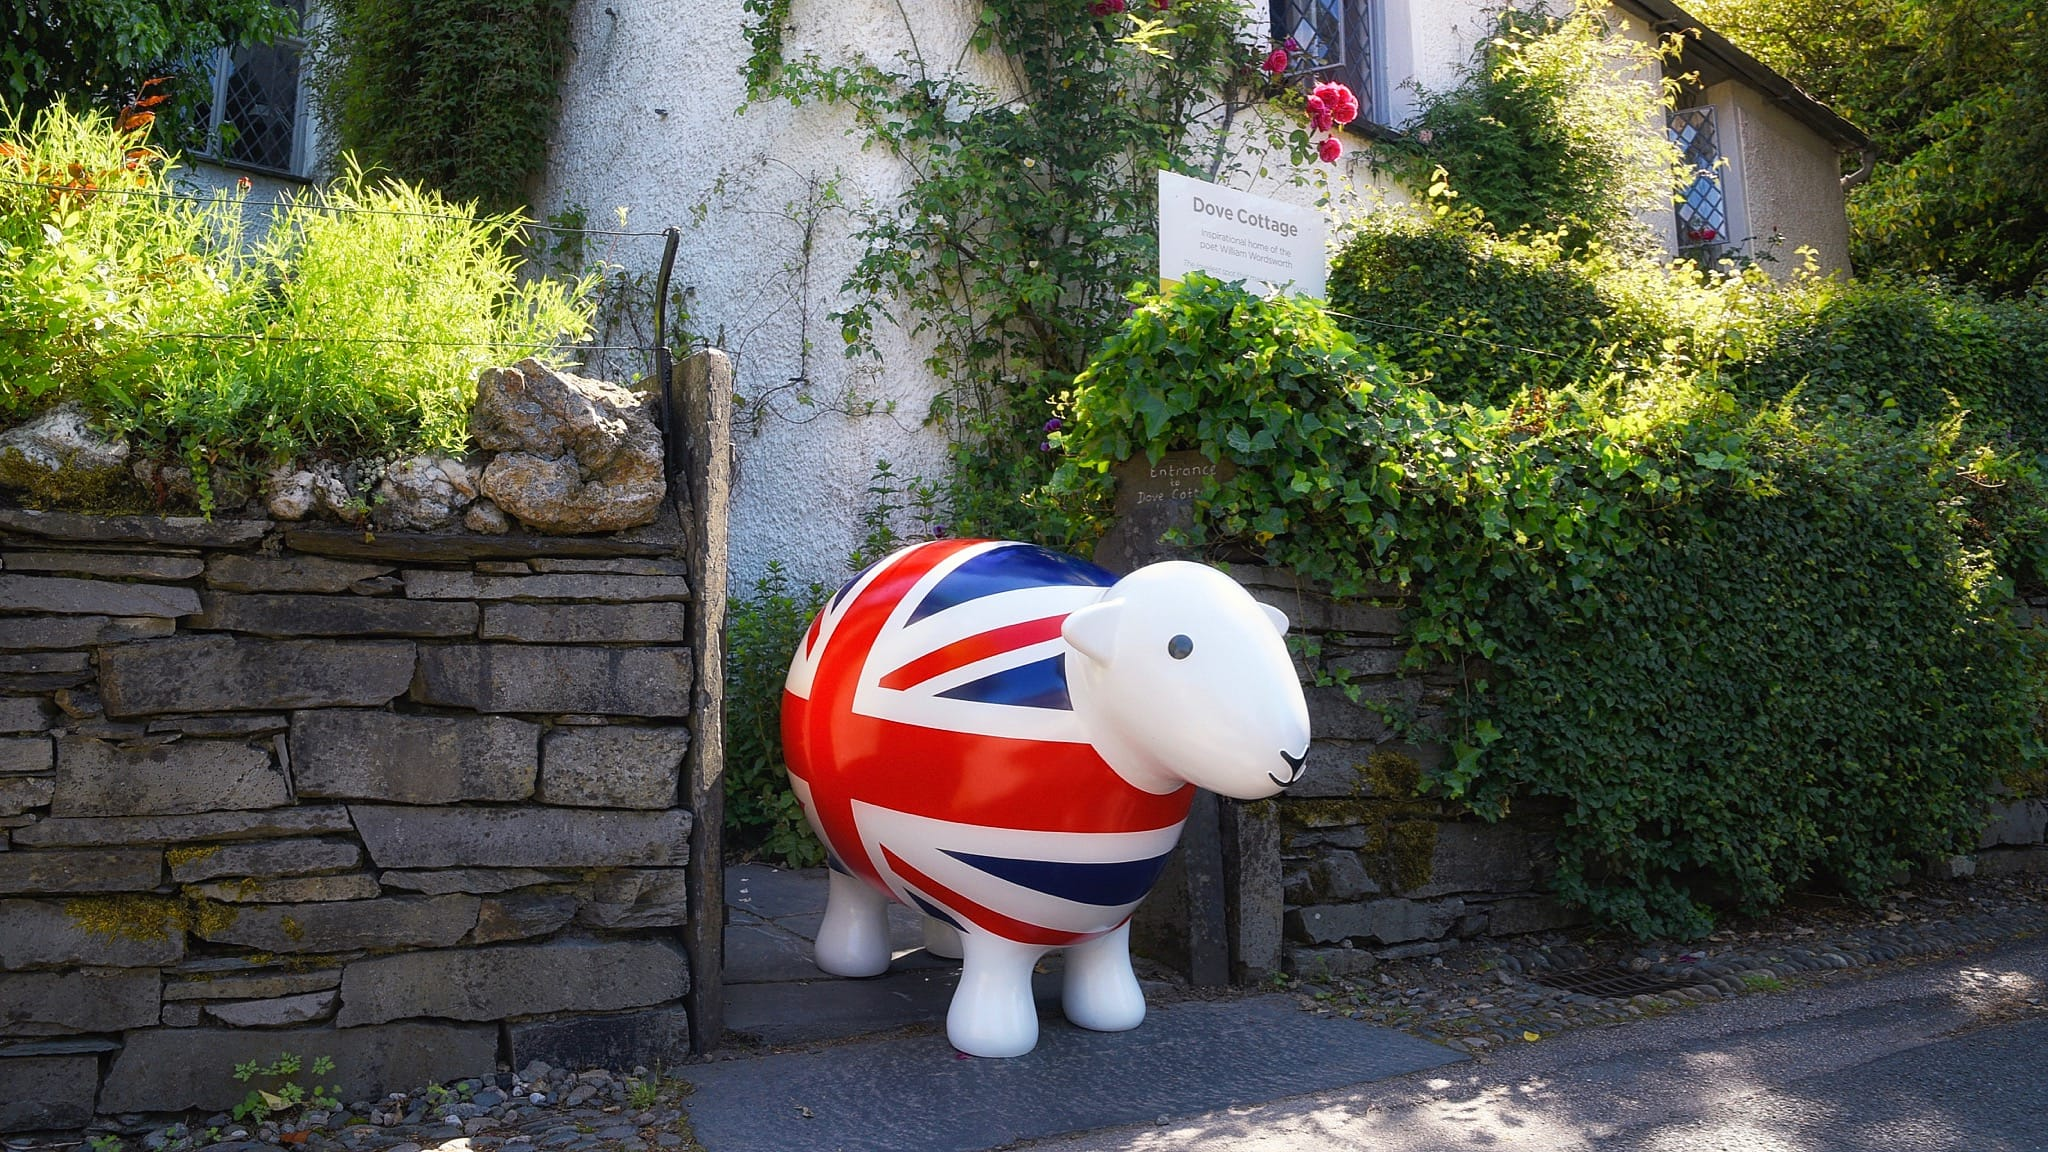 Giant GB Herdy outside Dove Cottage, the former home of the Wordsworth family